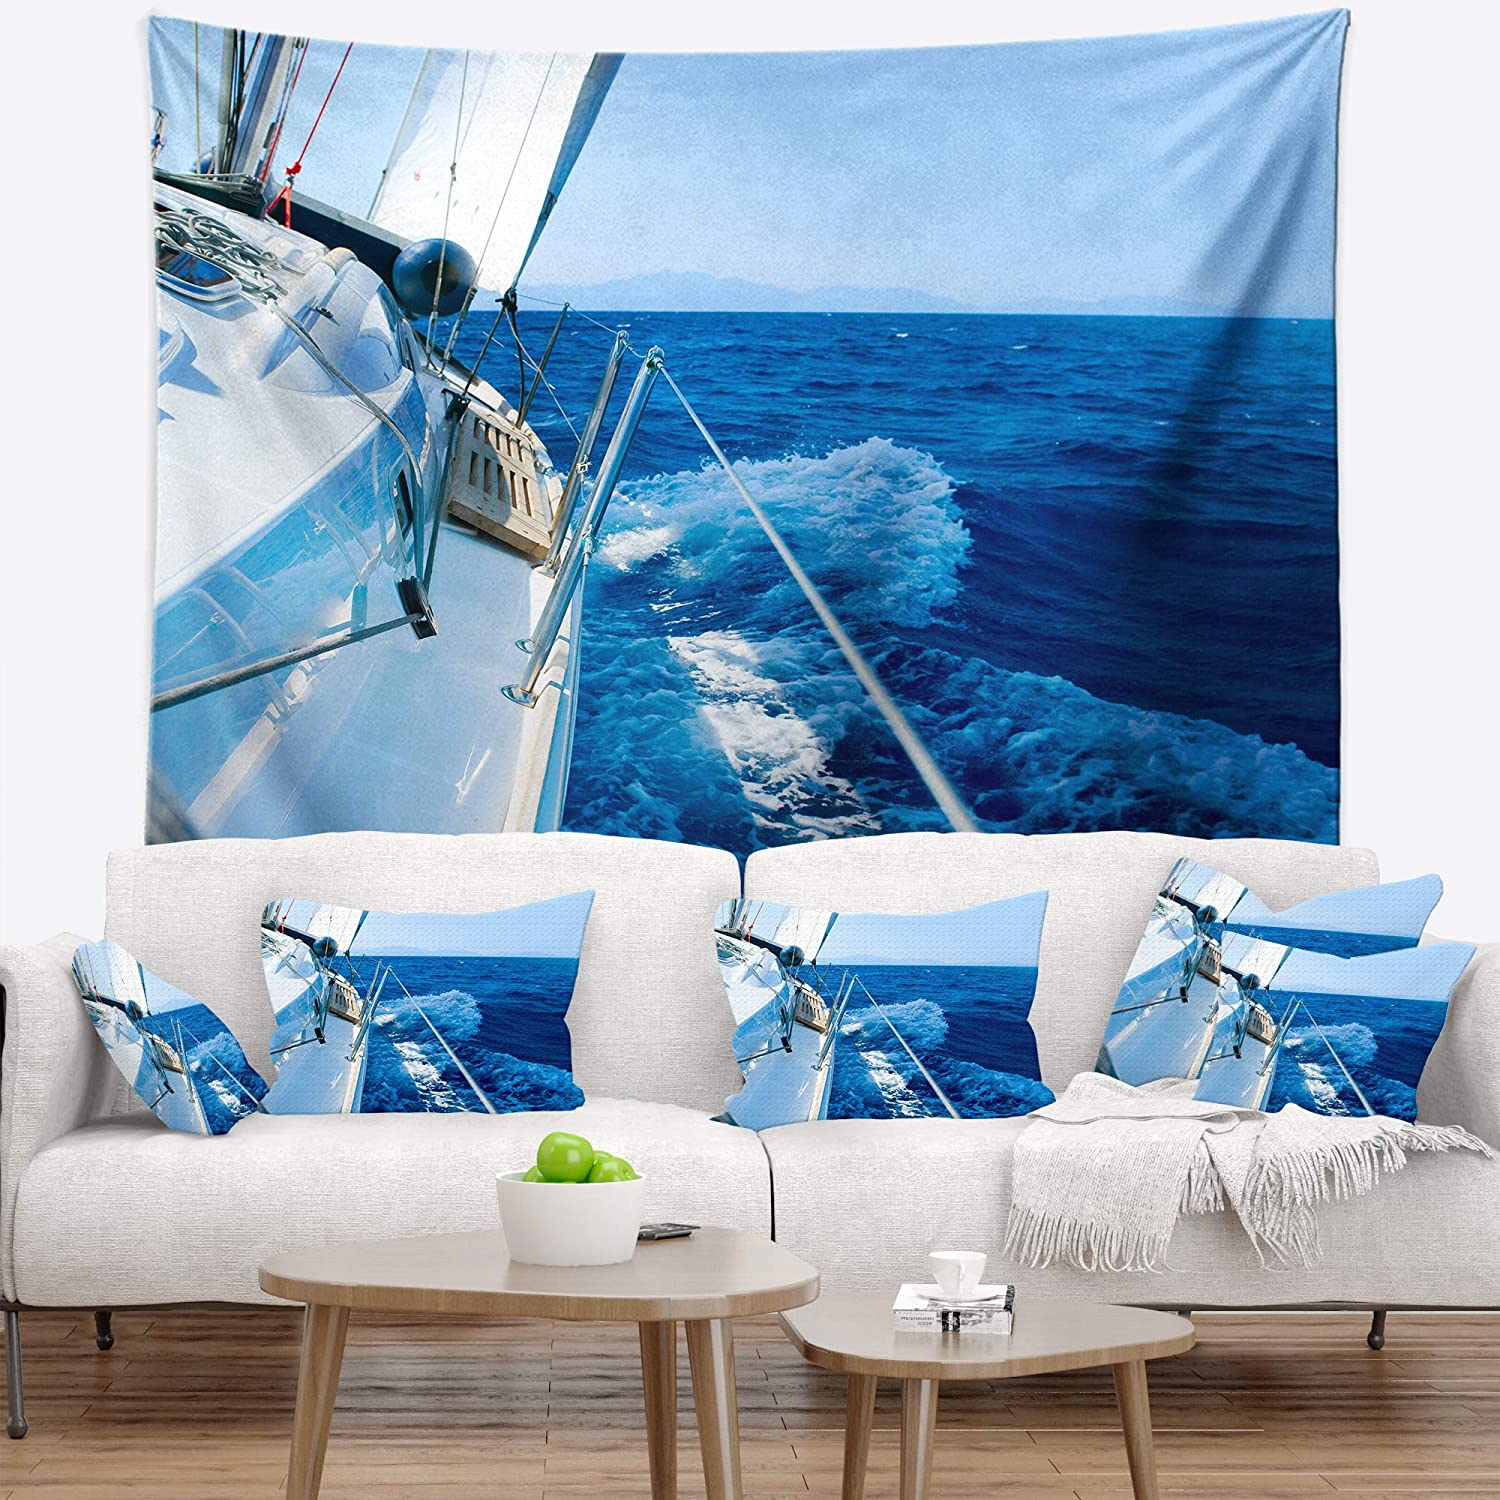 Designart TAP14264-39-32  Tourism Yacht Sailing in Blue Sea Seashore Blanket D/écor Art for Home and Office Wall Tapestry Medium Created On Lightweight Polyester Fabric x 32 in 39 in